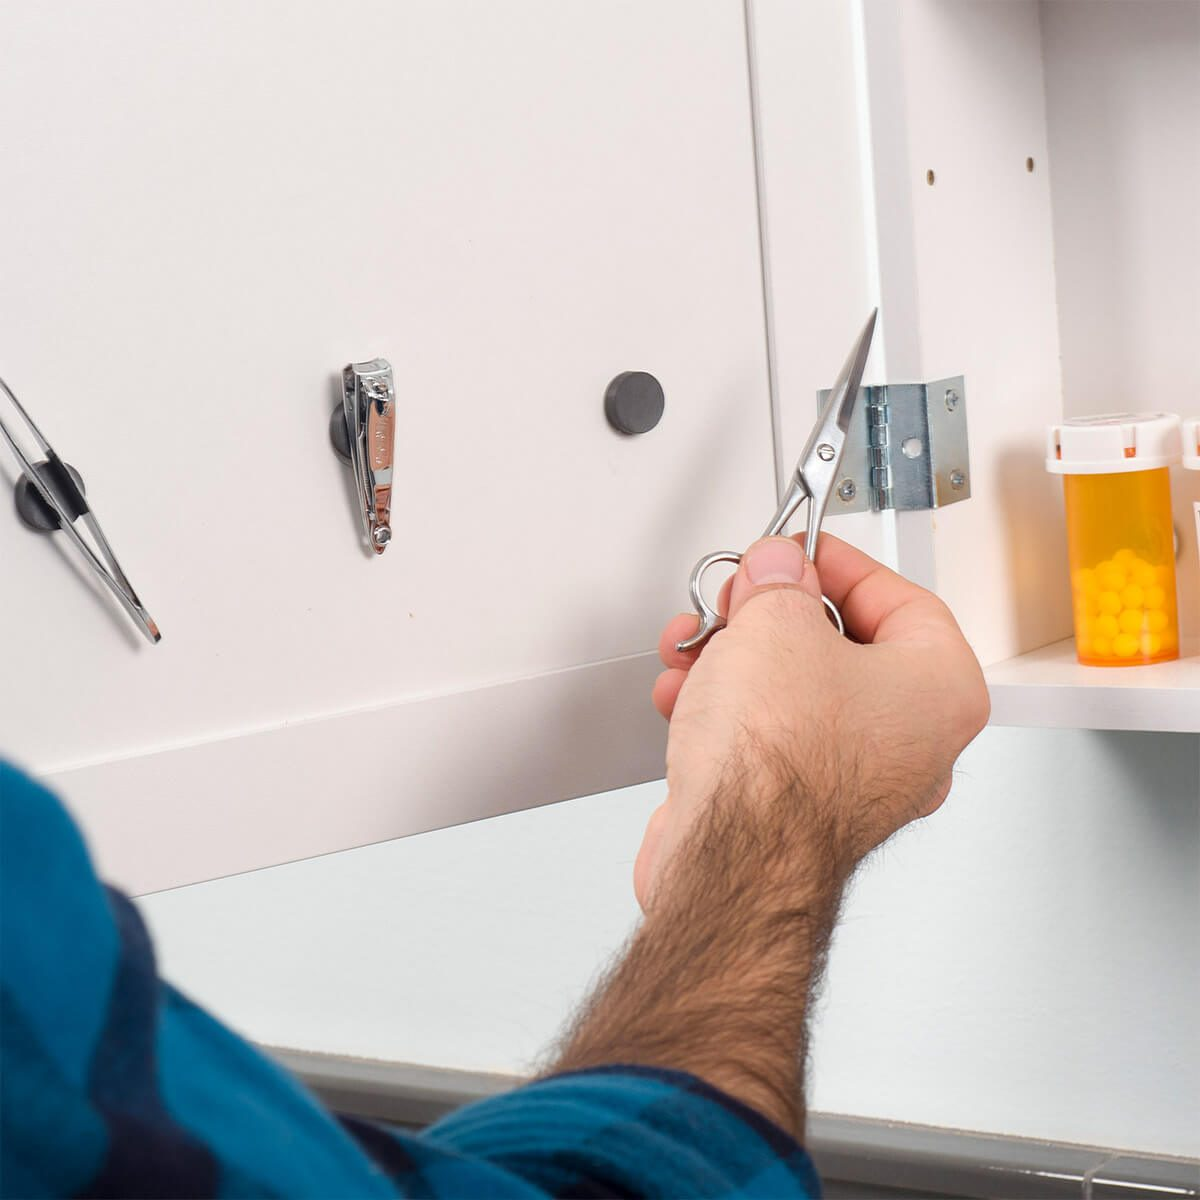 Home organizing hacks mount magnets inside a medicine cabinet